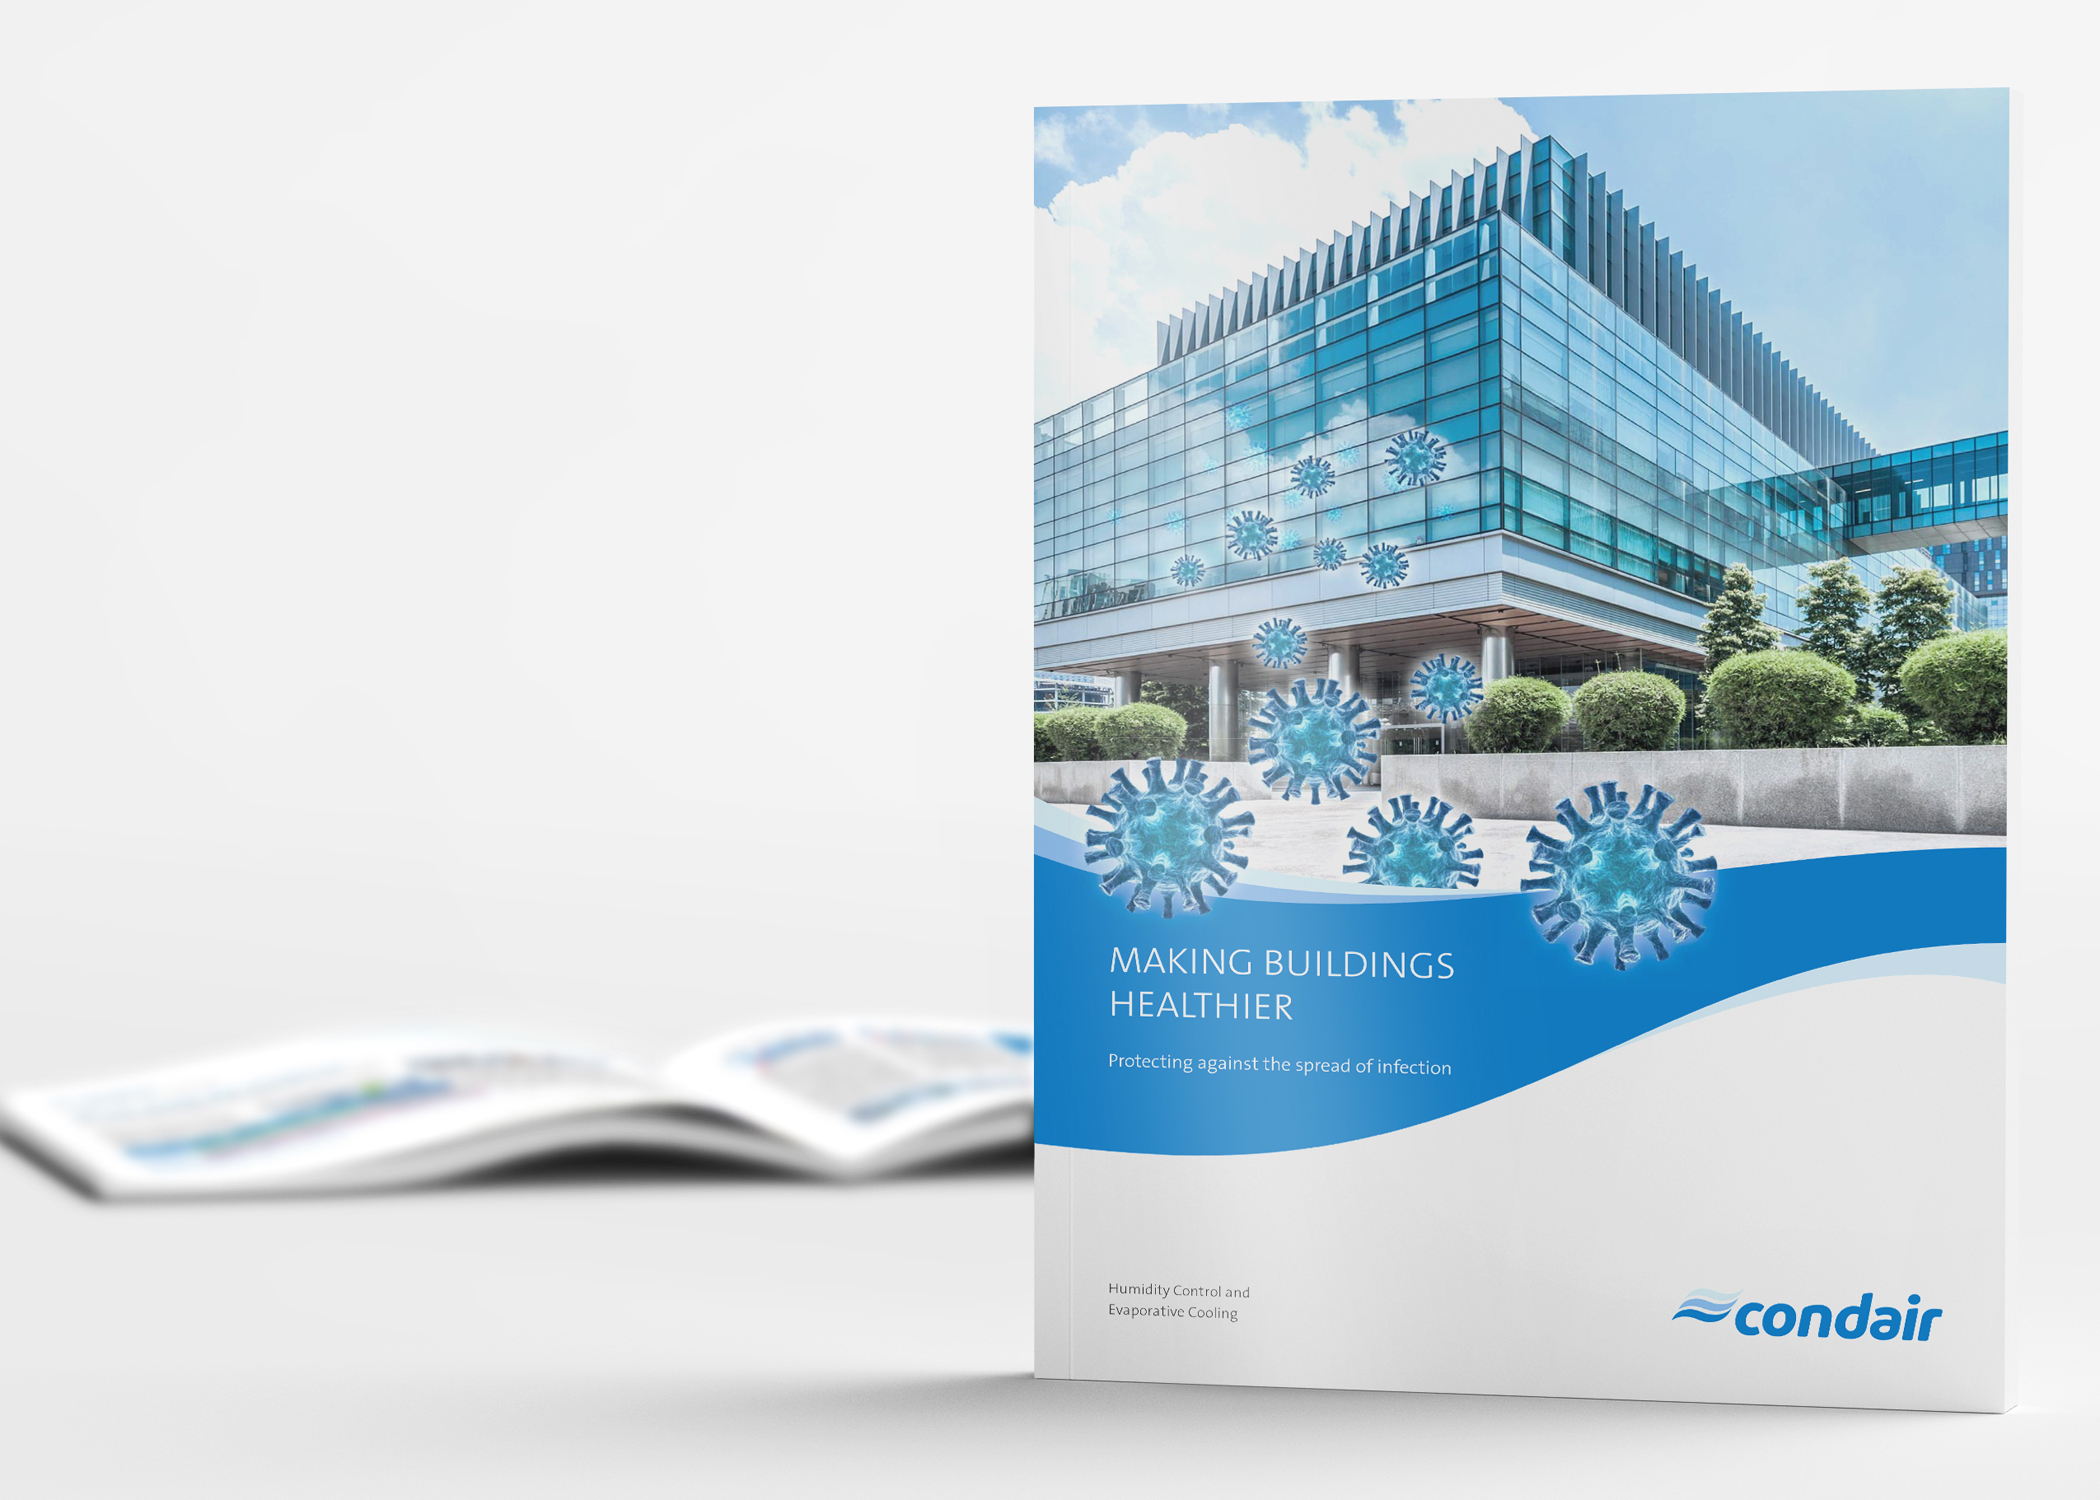 Condair releases whitepaper on healthy buildings